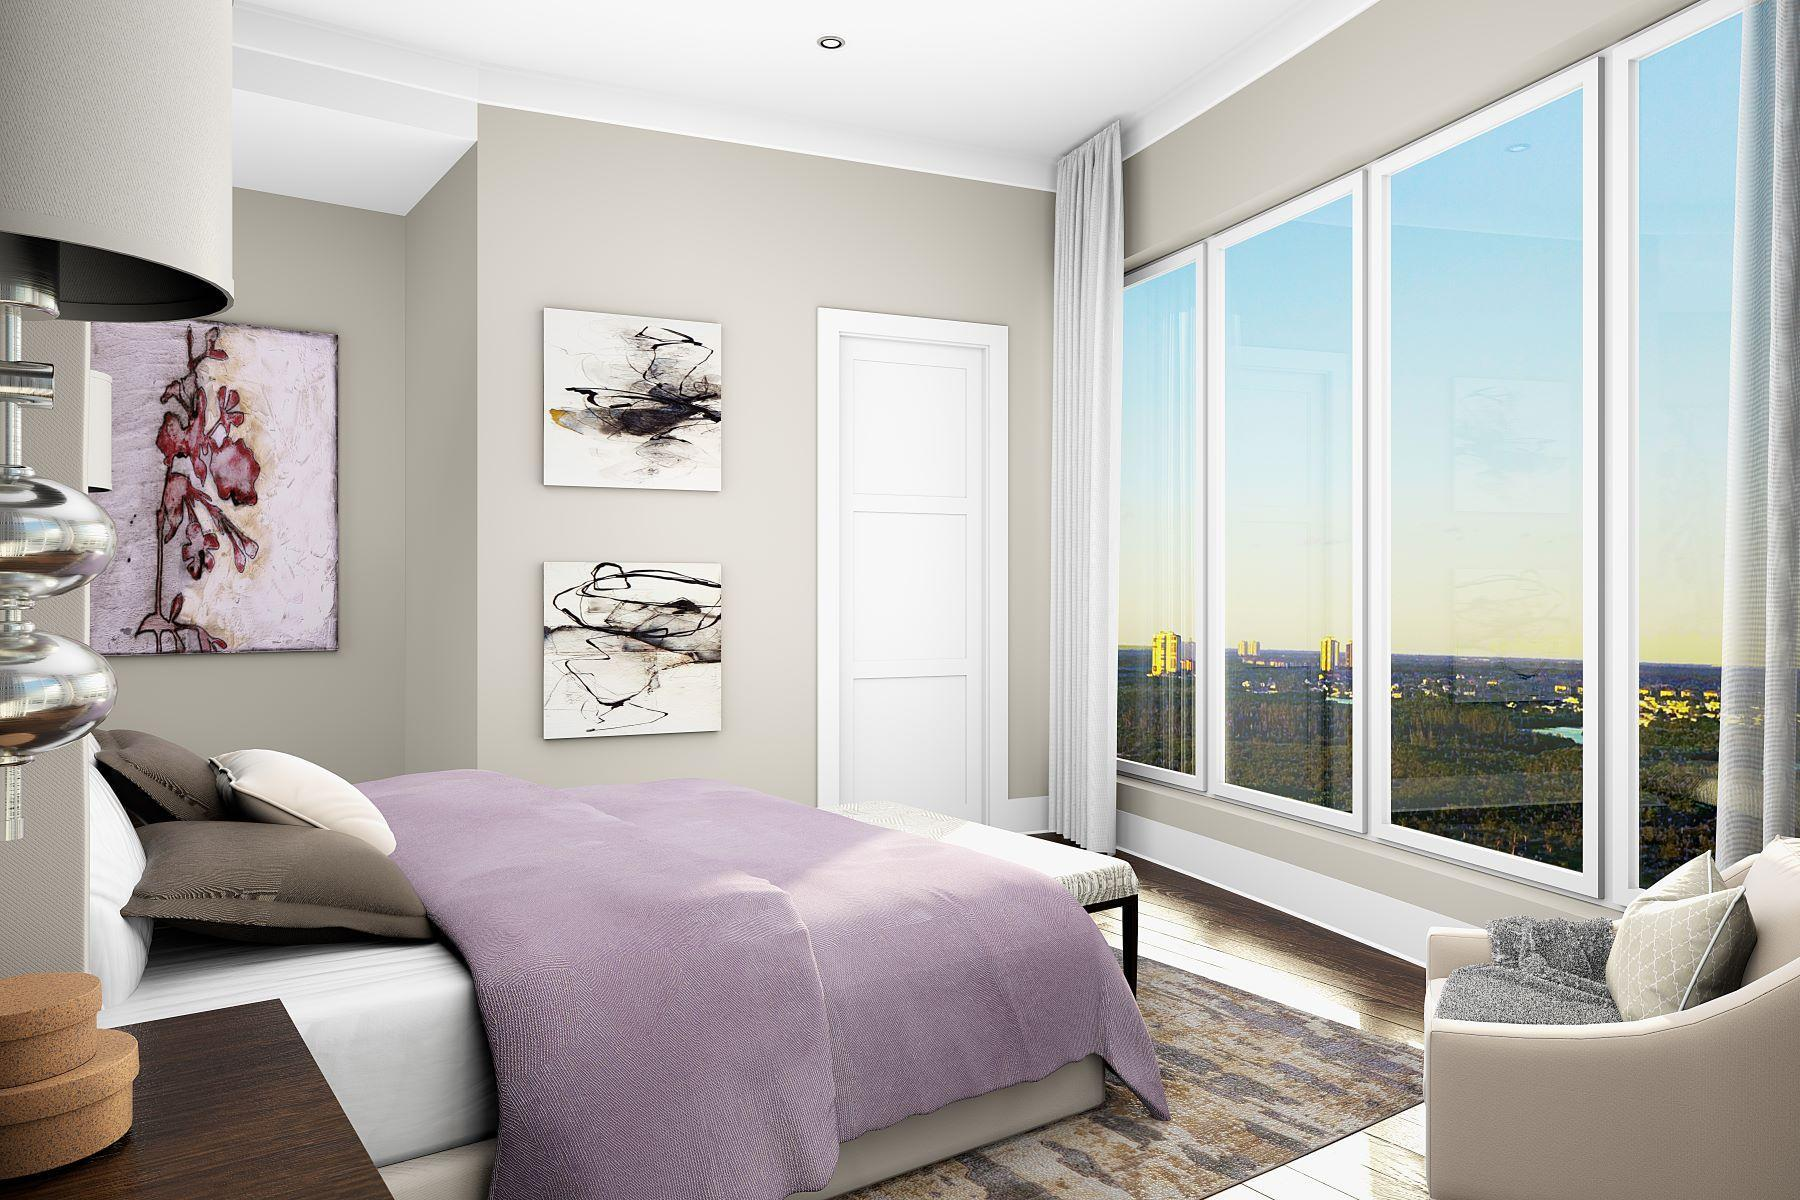 Bedroom featured in the Omega Residence 01 By The Ronto Group in Fort Myers, FL